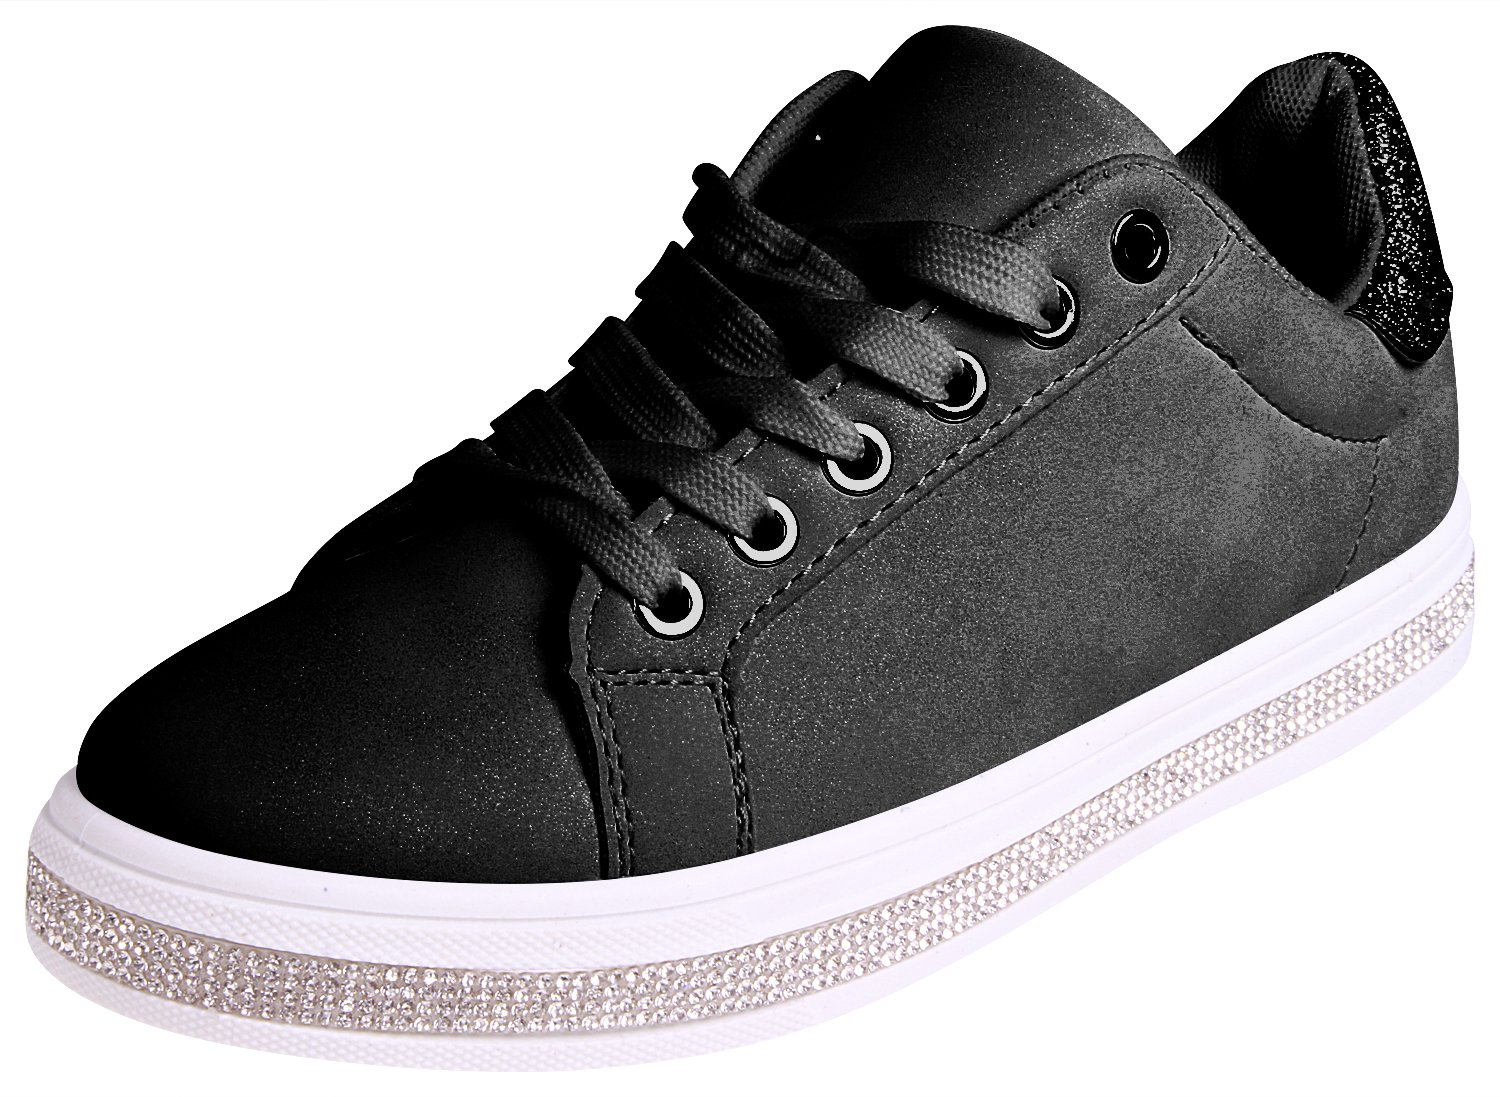 Enimay Womens Glitter Fashion Sneakers Lace up Shoes B07BSY3RY4 9 B(M) US|Black